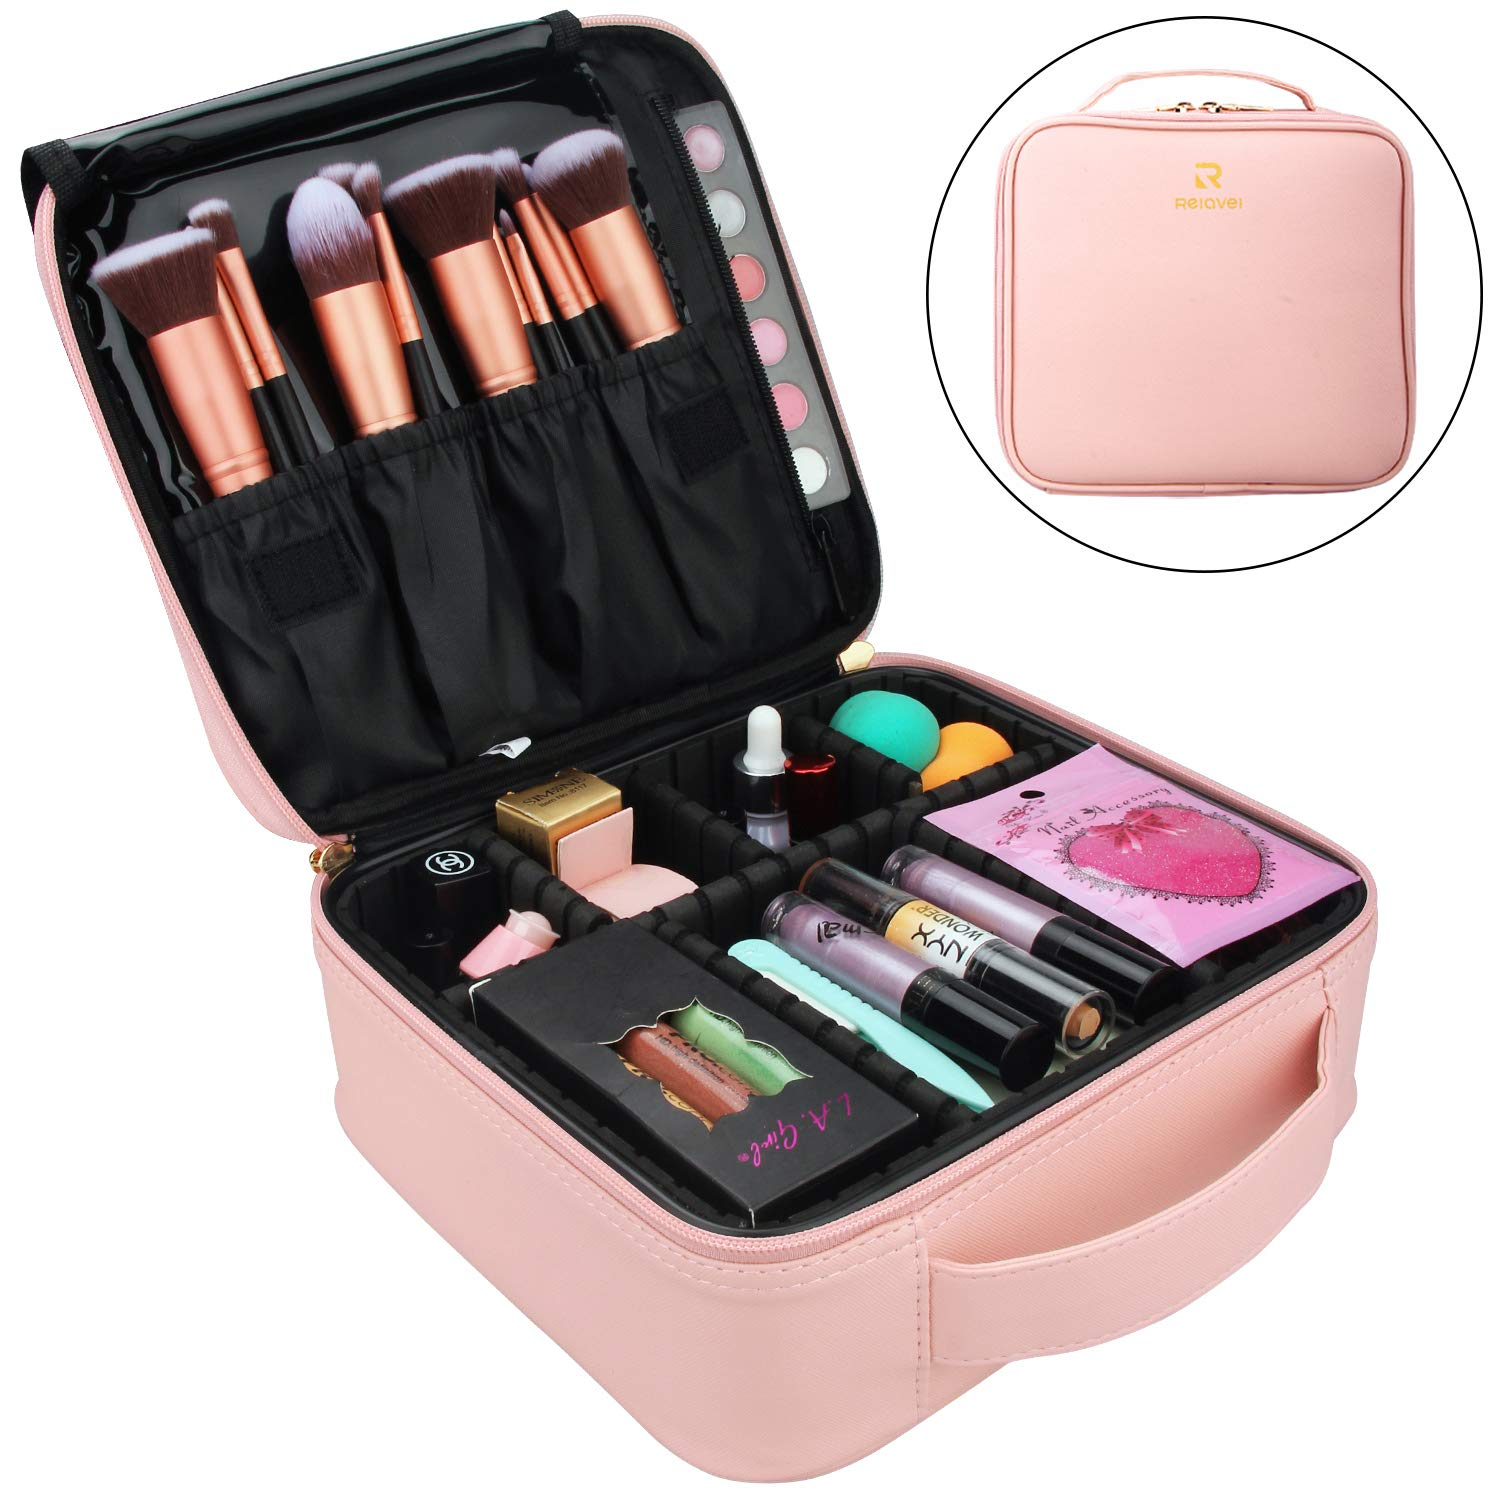 Relavel Makeup Case Travel Makeup Bag Makeup Train Case Cosmetic Bag Toiletry Makeup Brushes Organizer Portable Travel Bag Artist Storage Bag with Adjustable Dividers (Pink)